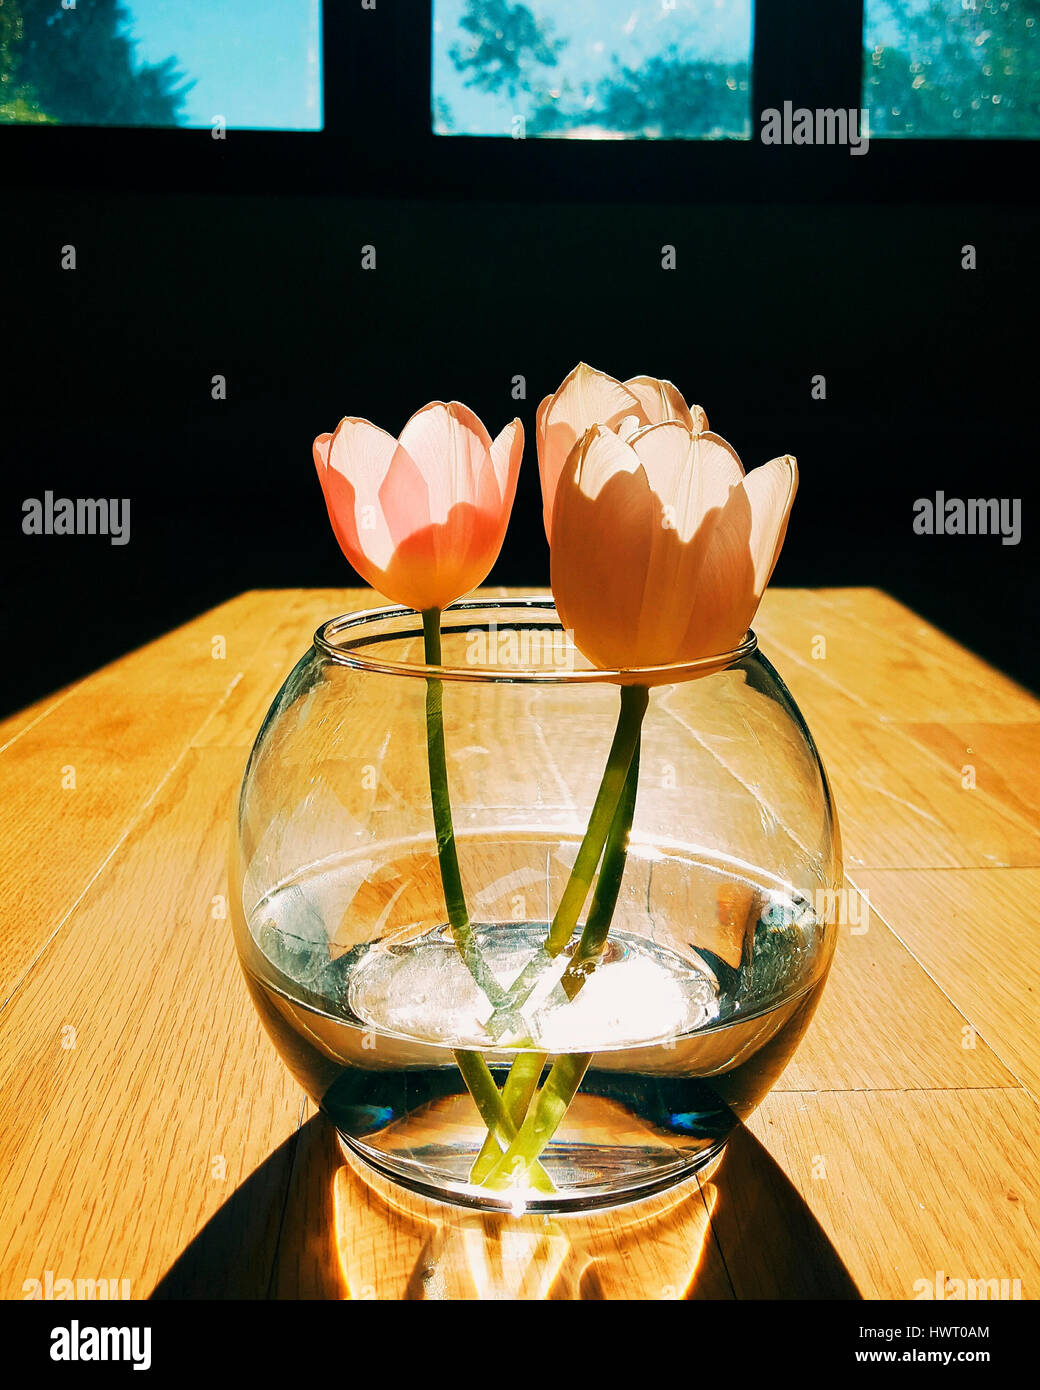 Tulips in vase on wooden table - Stock Image